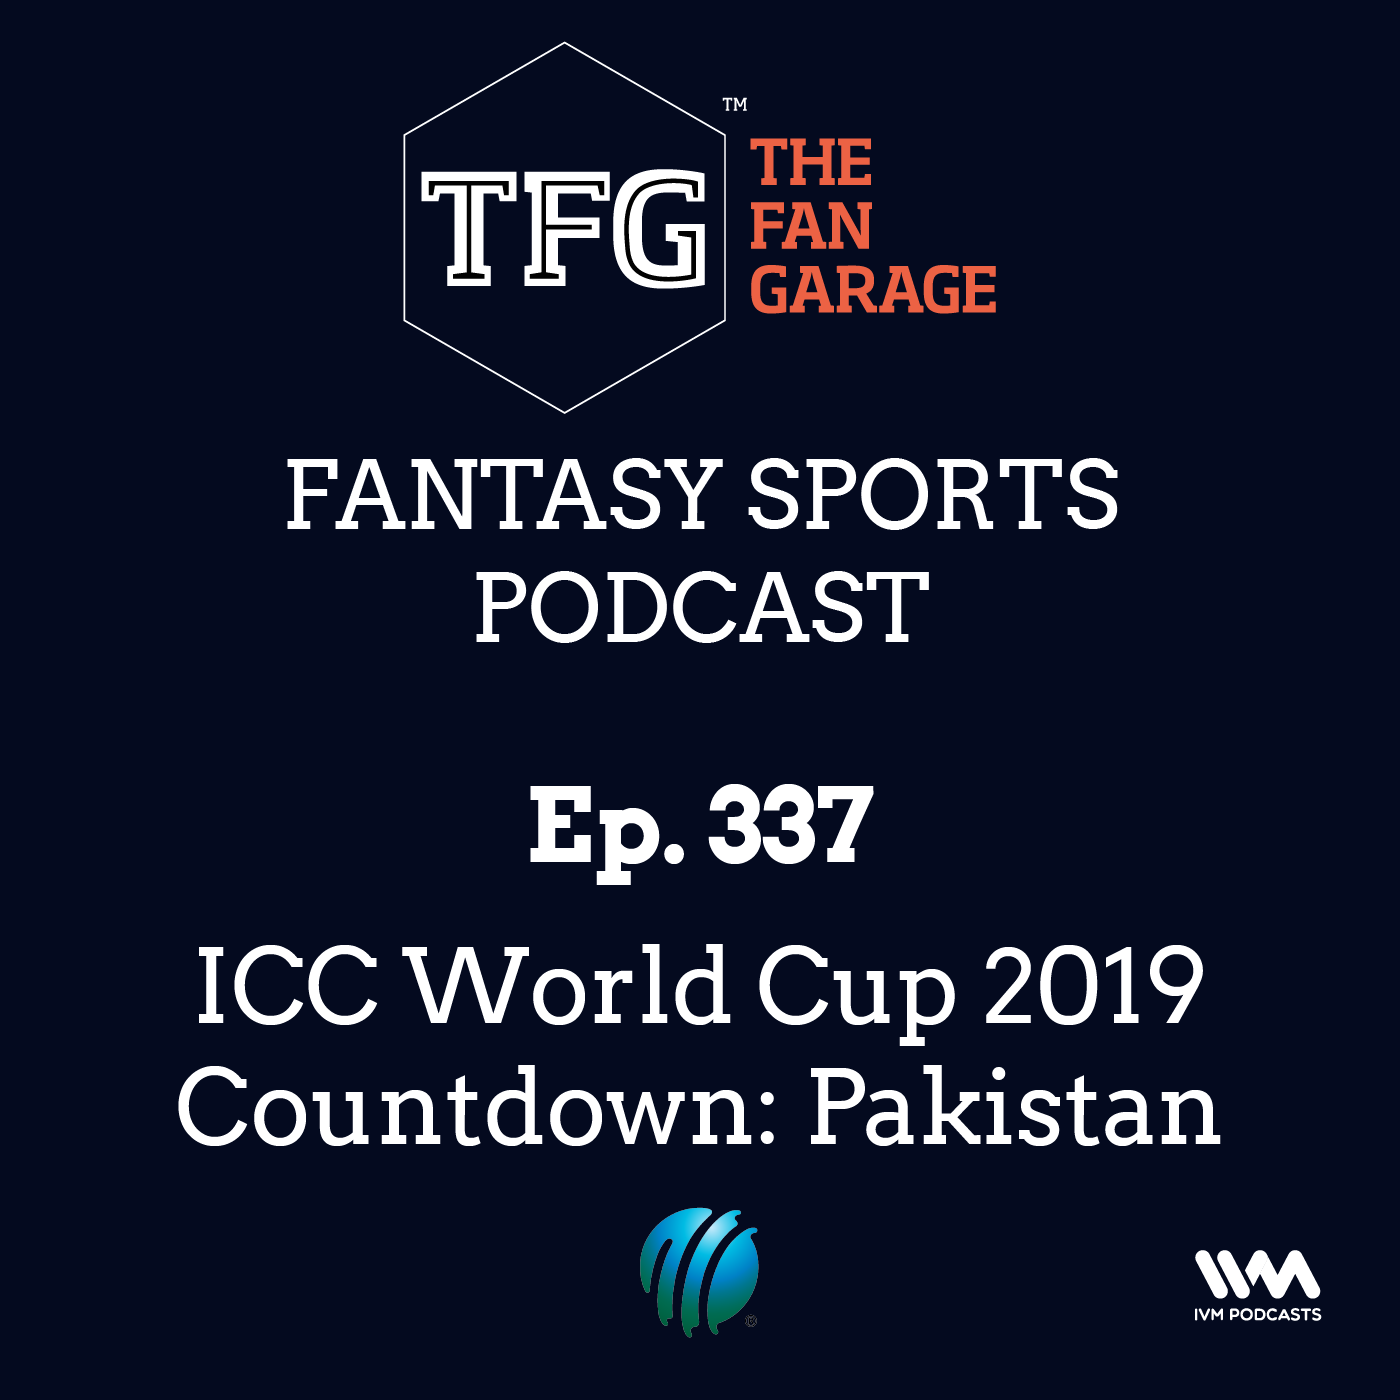 TFG Fantasy Sports Podcast Ep. 337: ICC World Cup 2019 Countdown: Pakistan